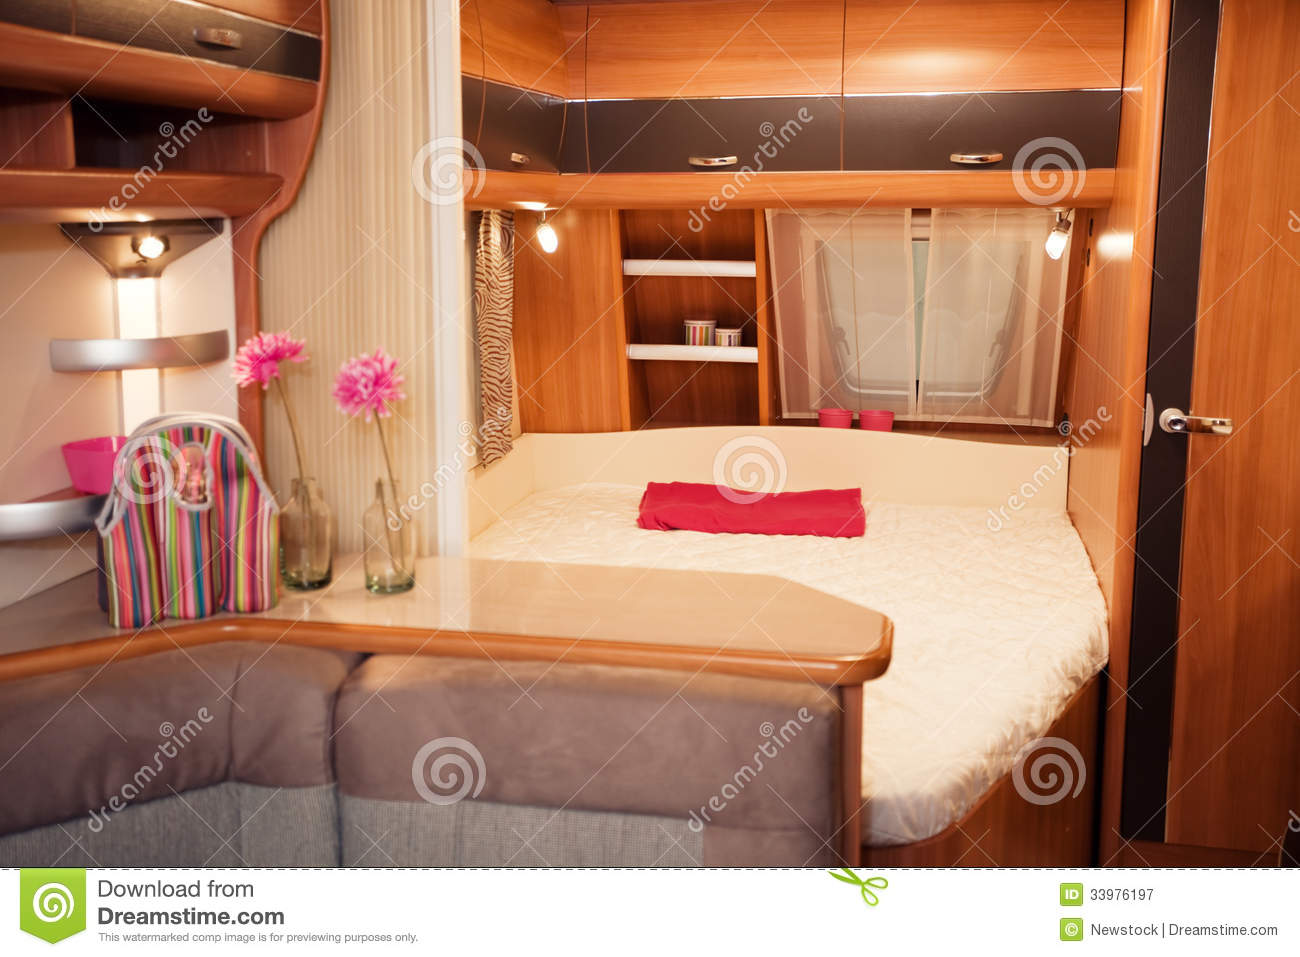 interior del dormitorio de la caravana imagen de archivo imagen 33976197. Black Bedroom Furniture Sets. Home Design Ideas